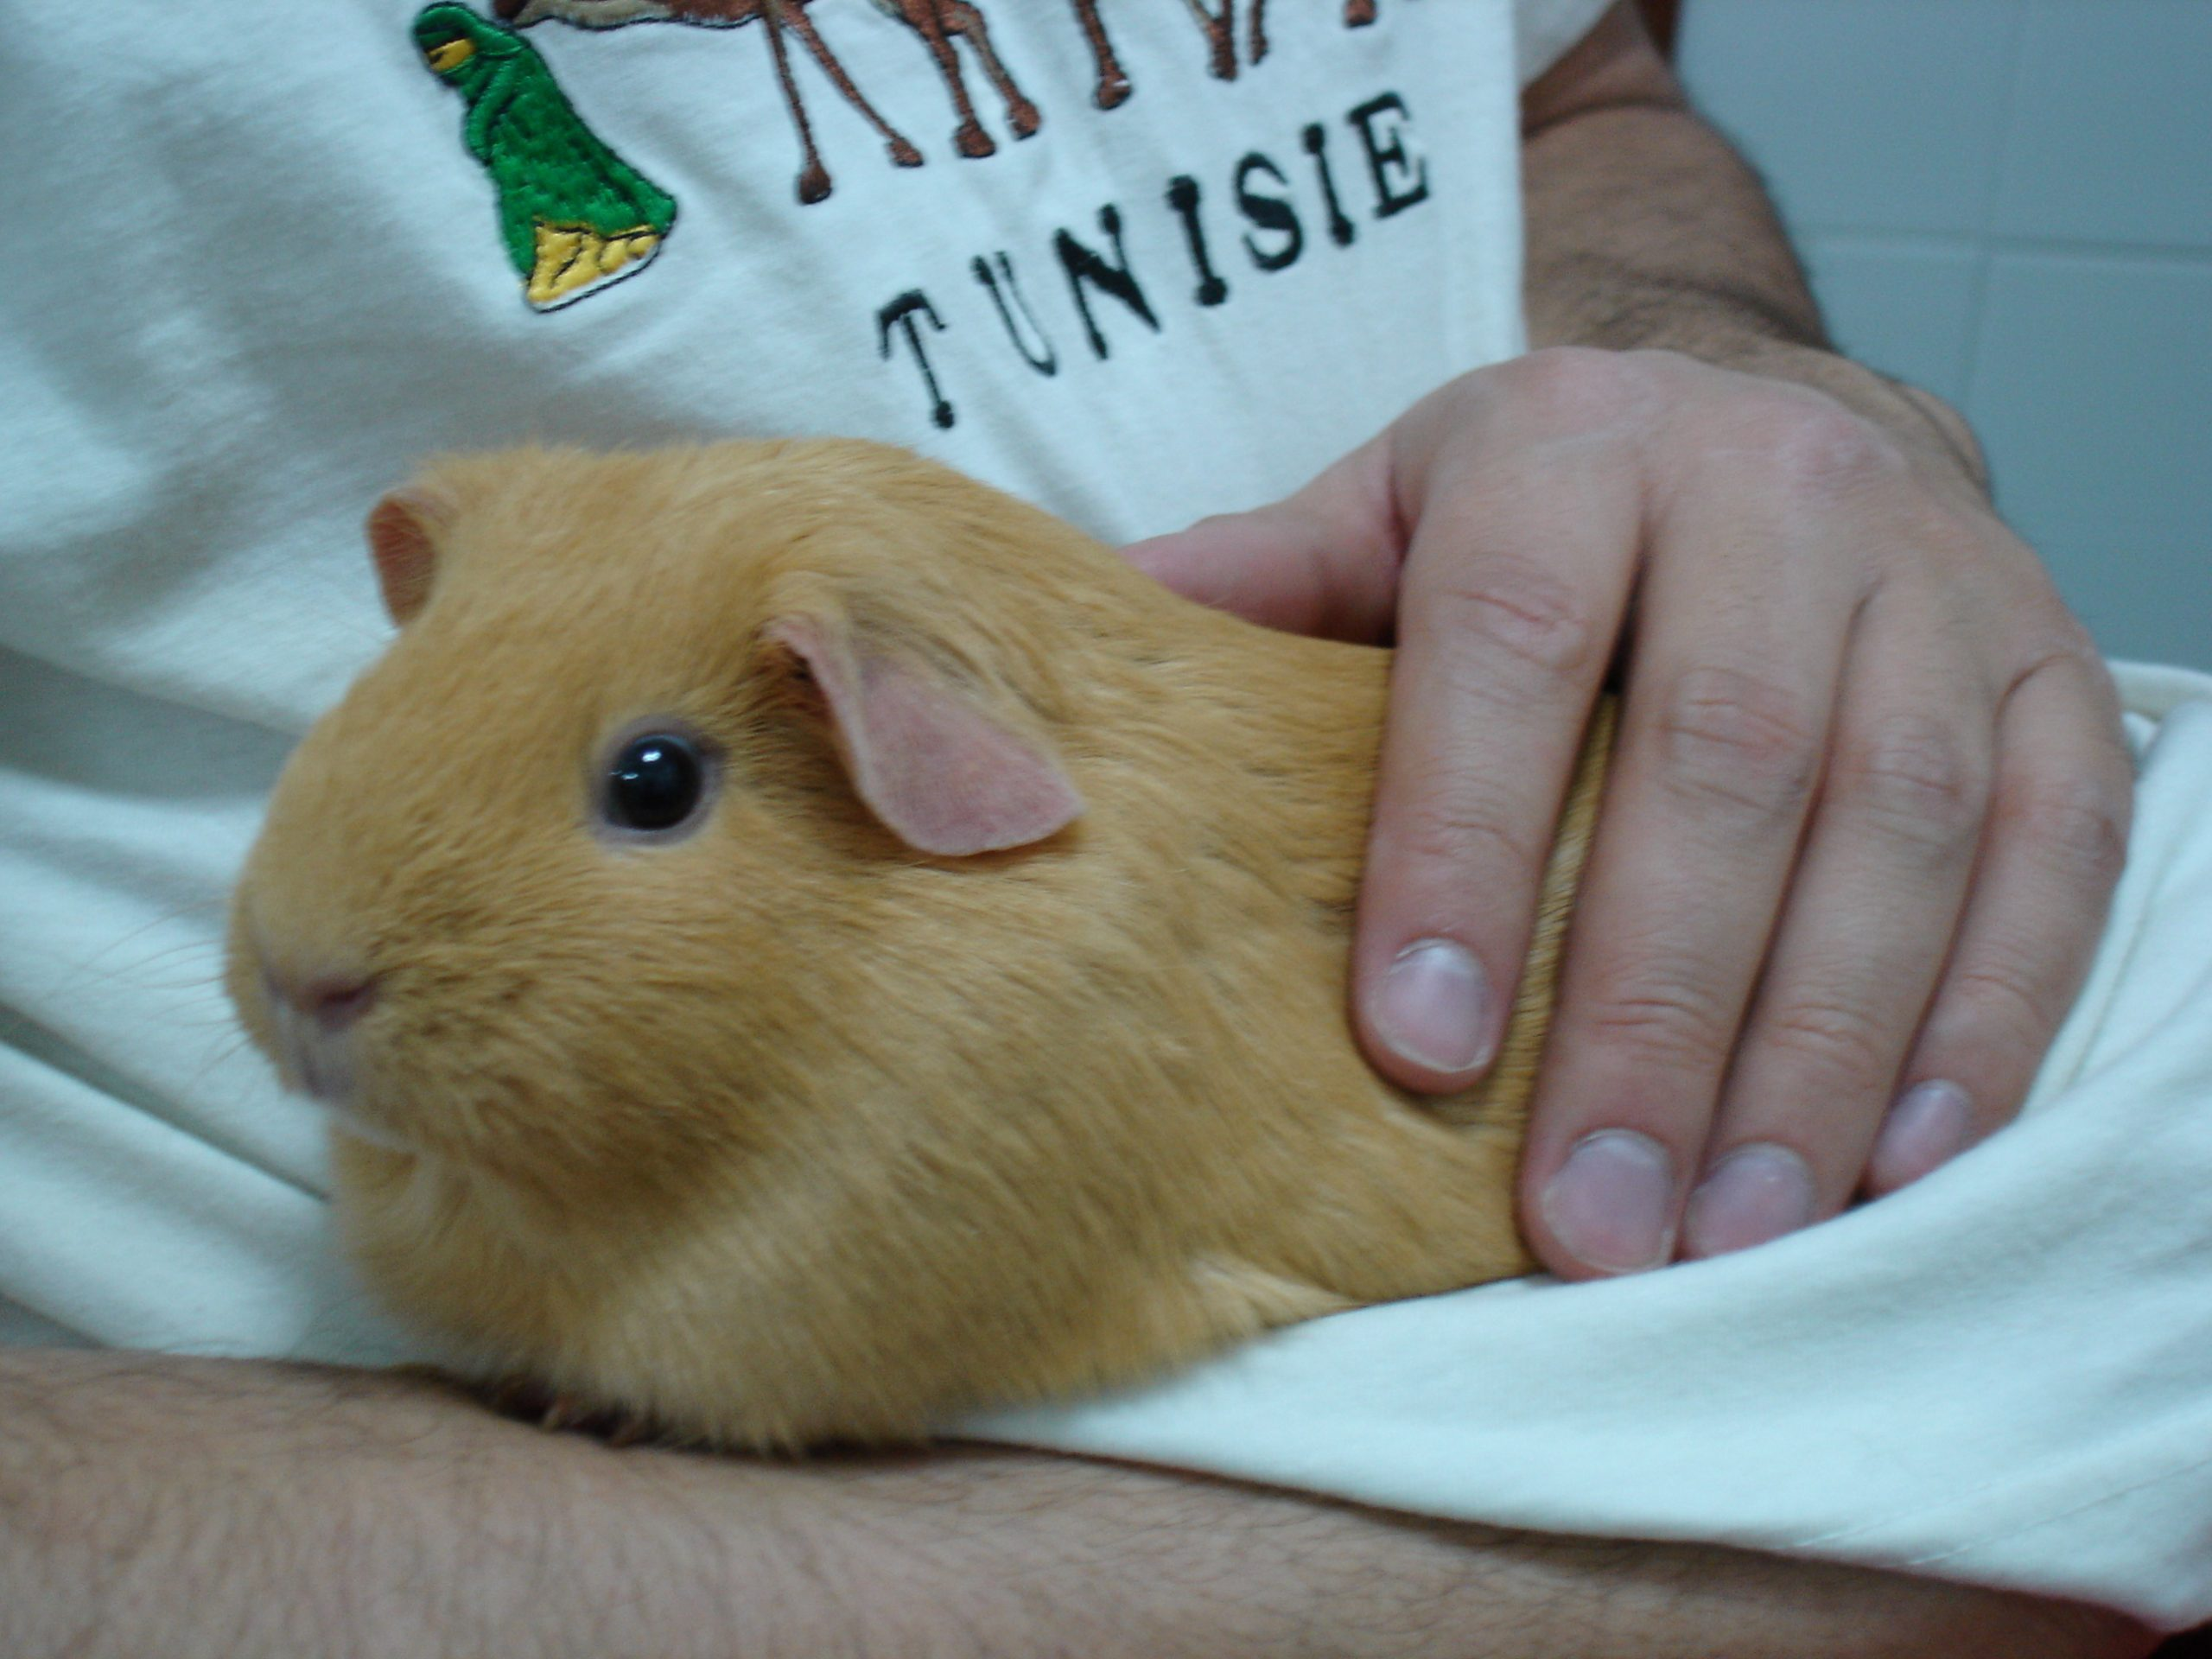 guinea pig calmly enjoys being held and petted